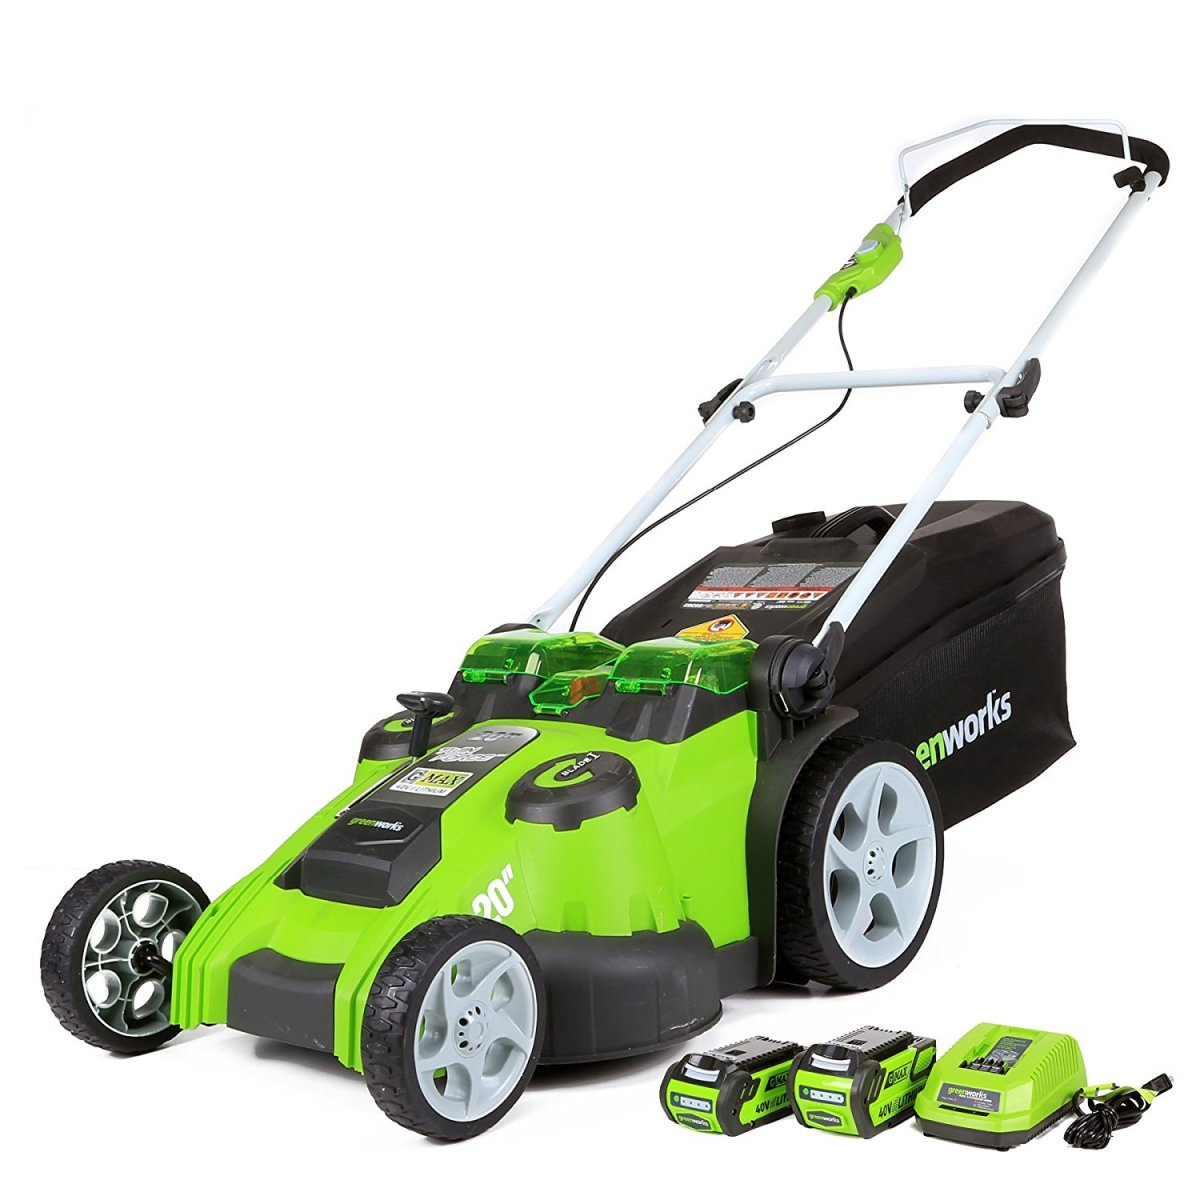 GreenWorks G-Max Mower: Pros and Cons From an Owner